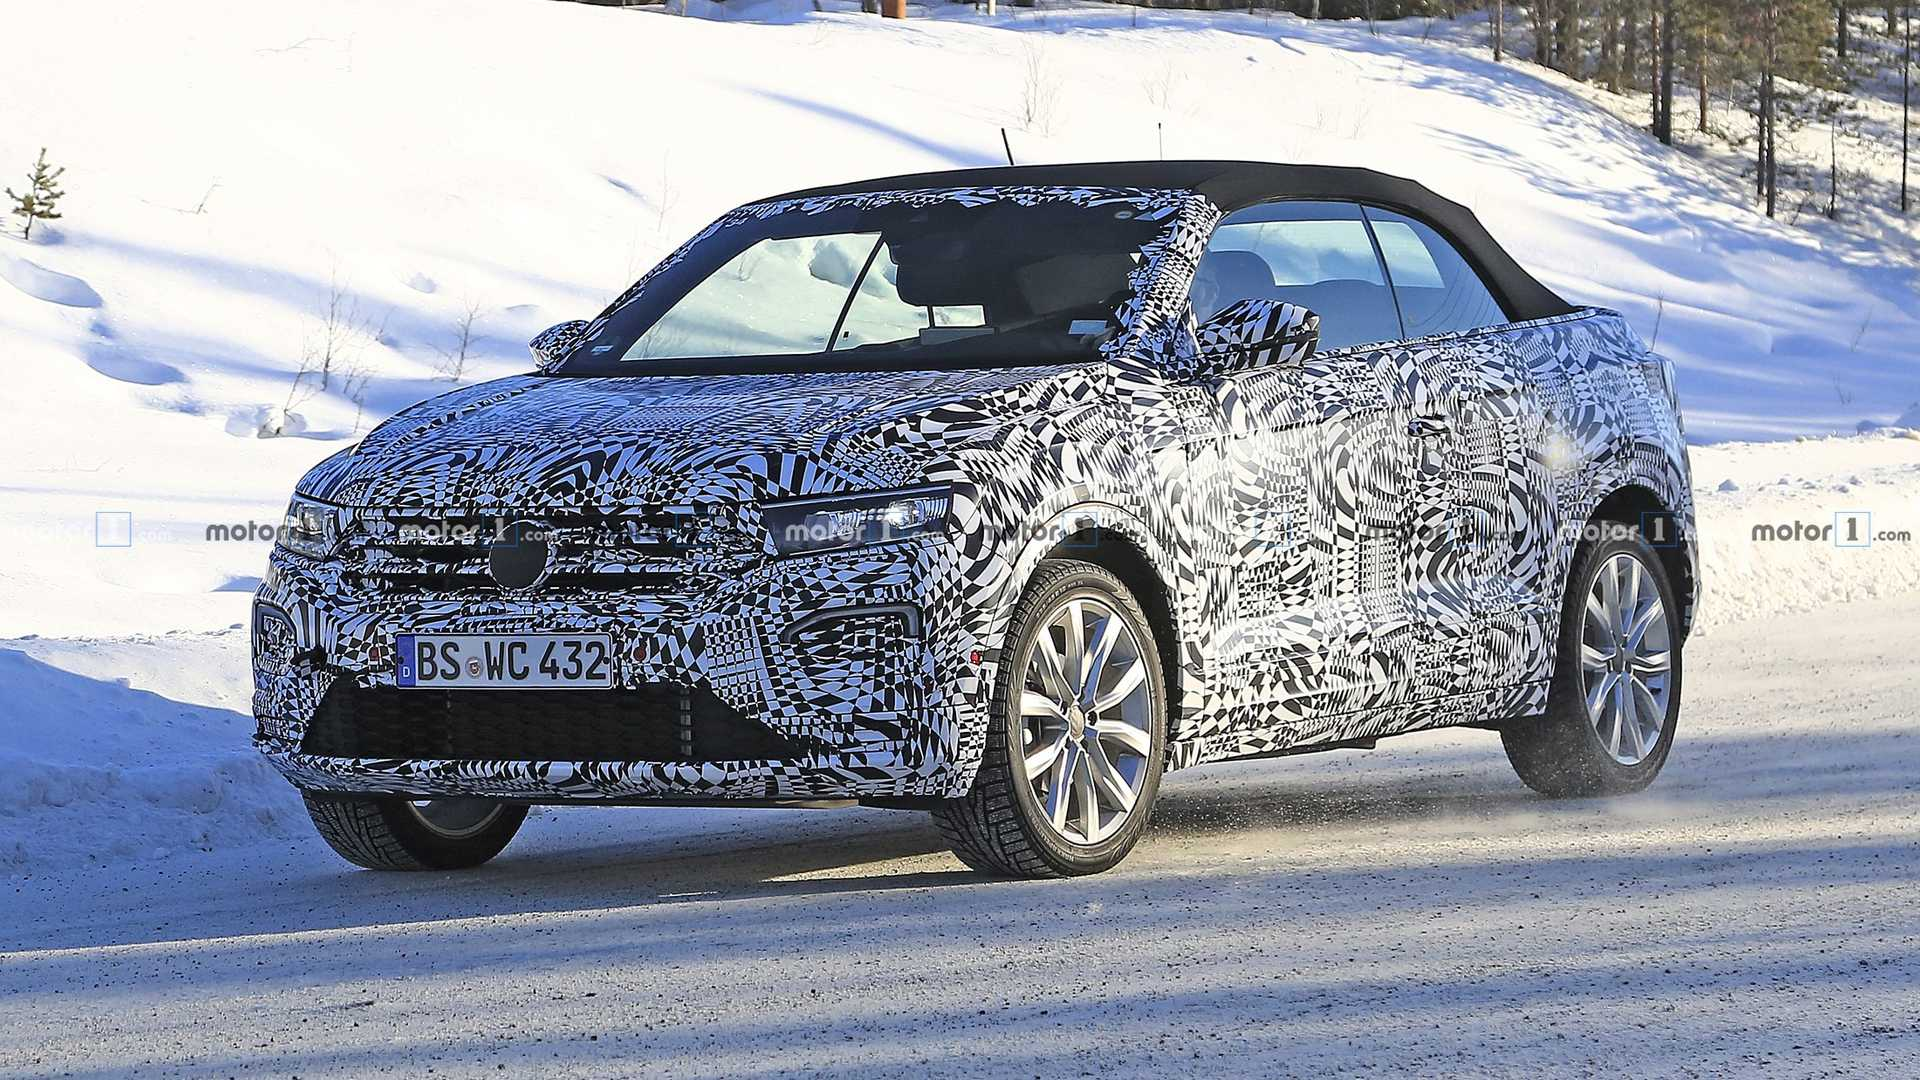 2020-vw-t-​roc-cabrio​-spy-photo